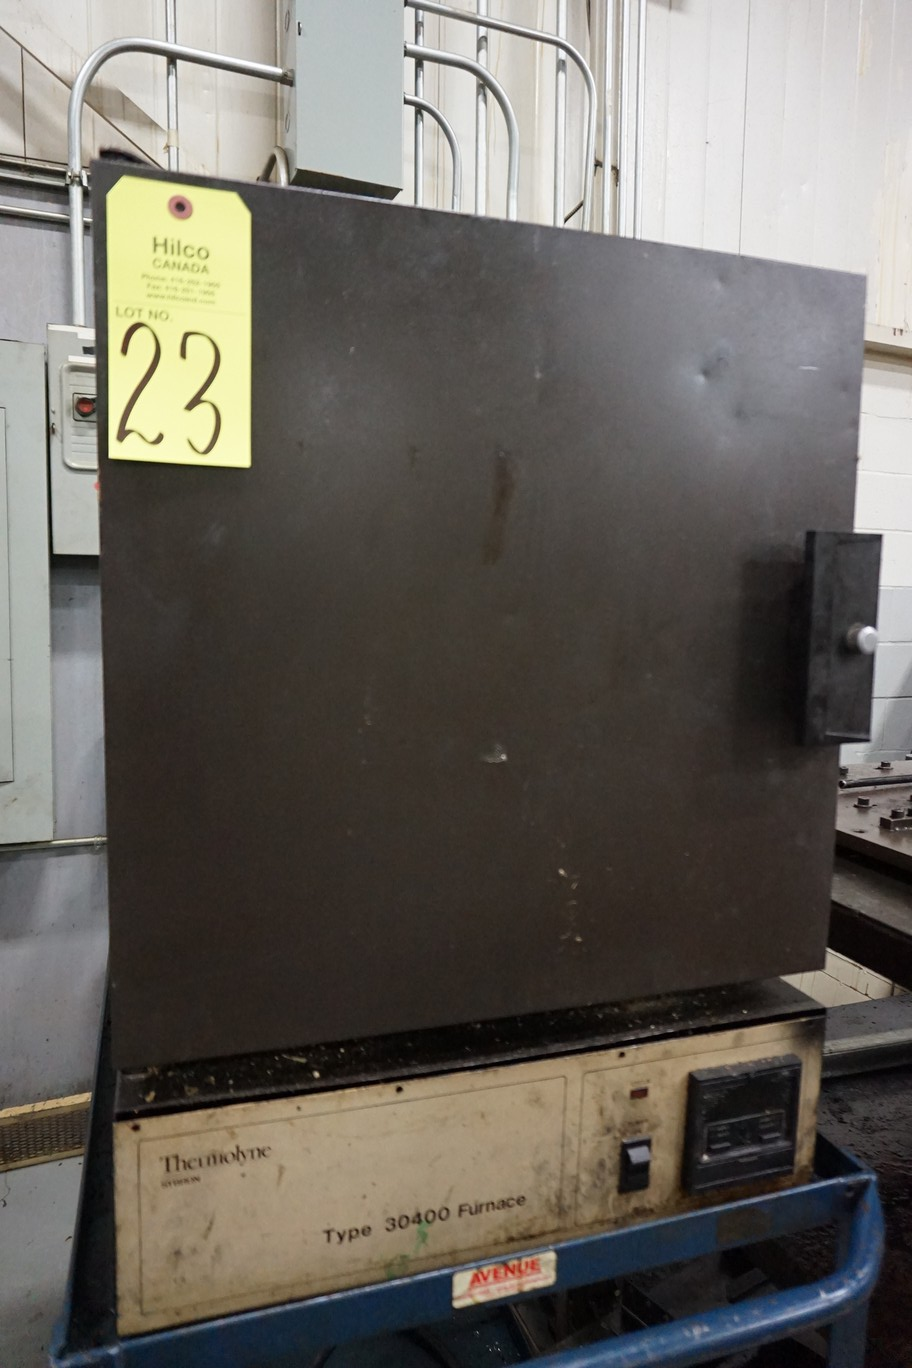 Thermolyne Type 30400 Furnace, Serial Number: n/a